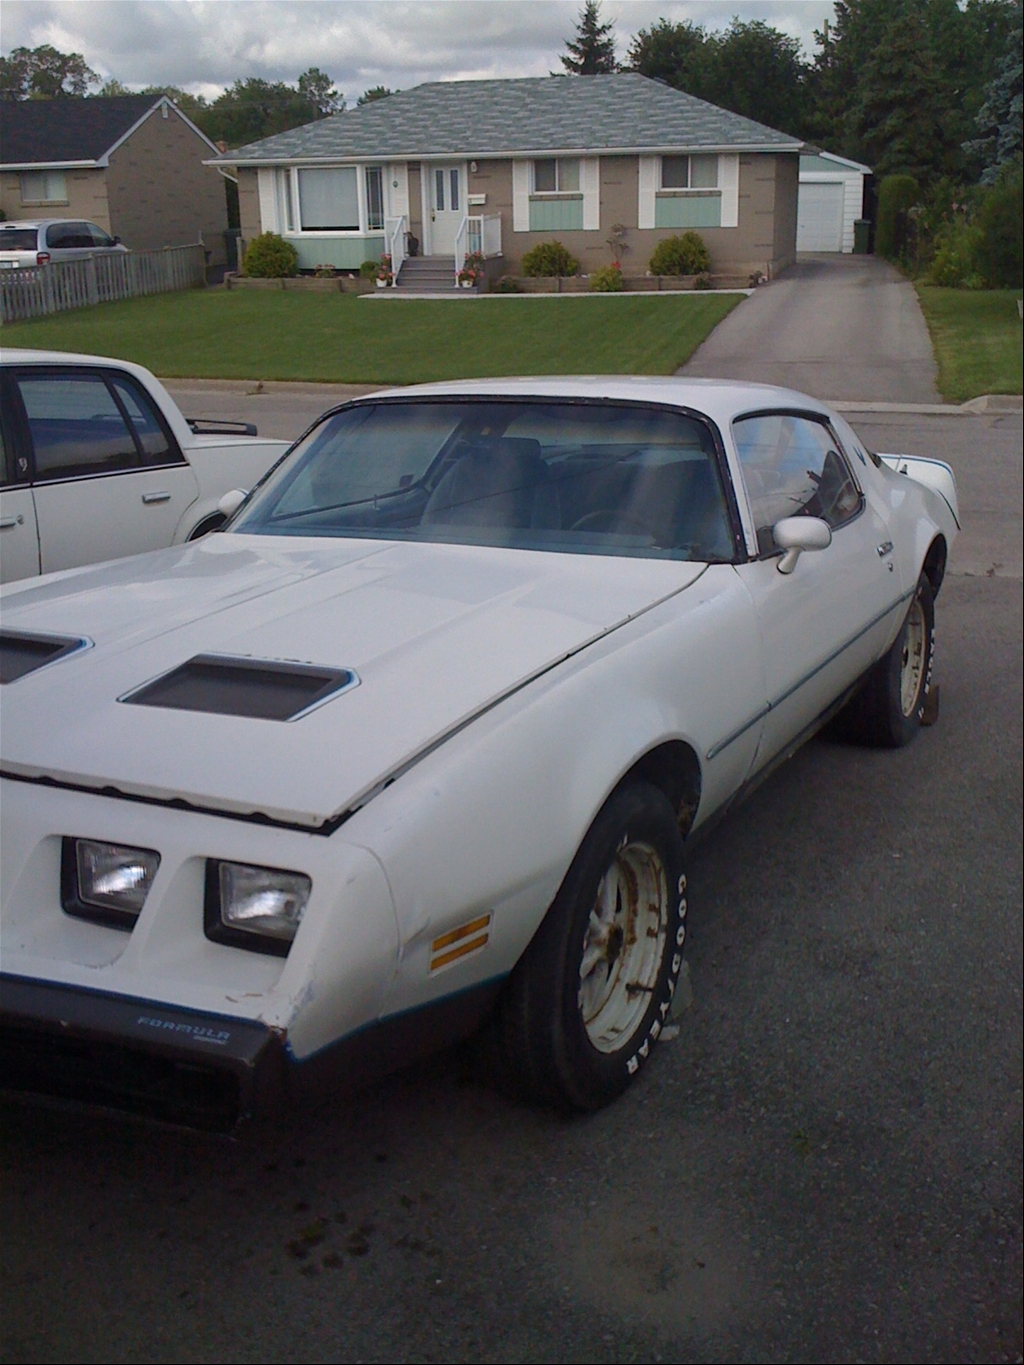 chris's Pontiac Firebird